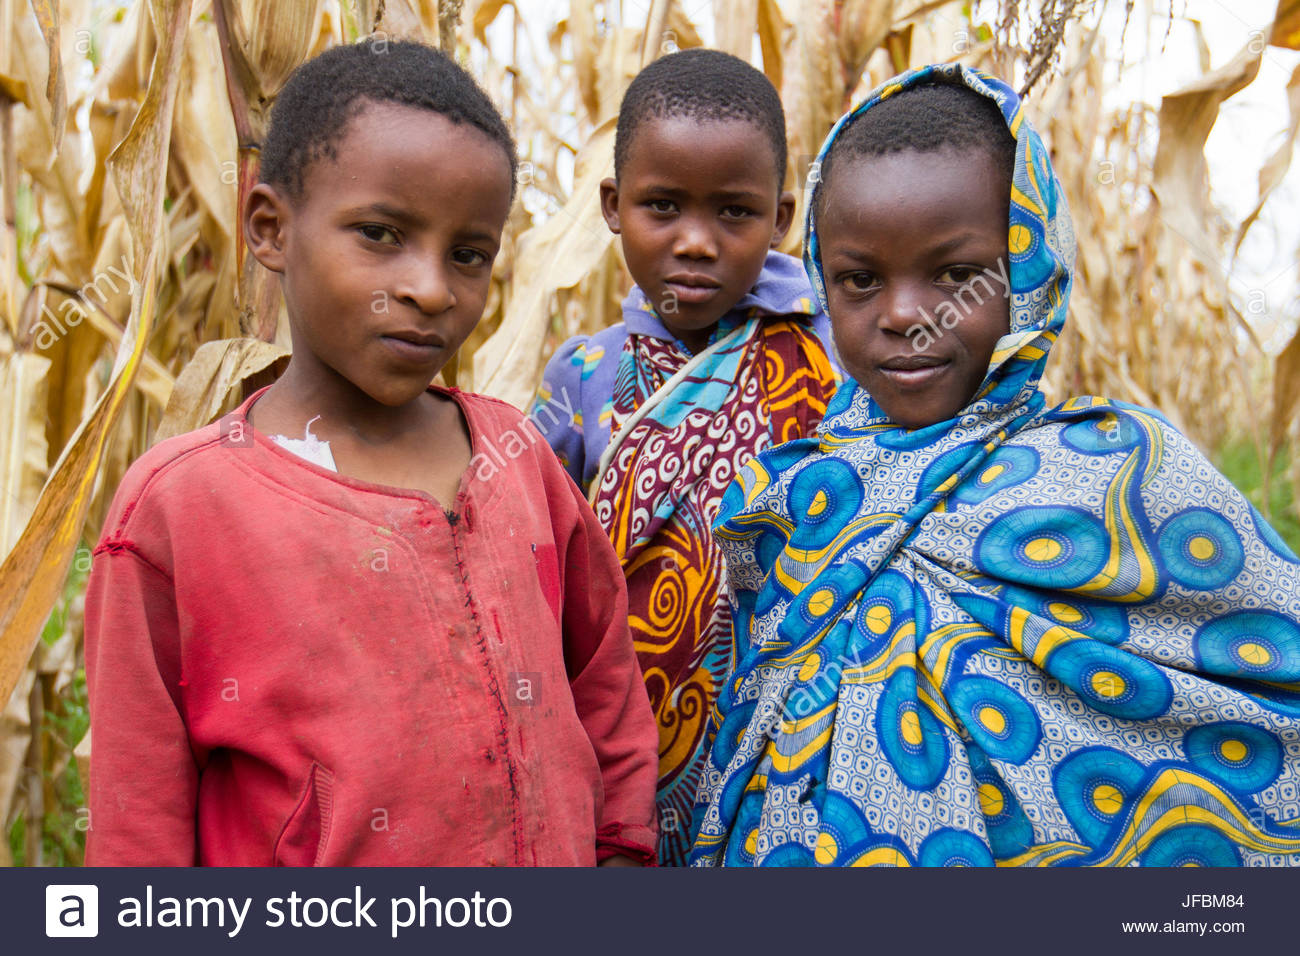 Three young girls standing in a corn field. - Stock Image